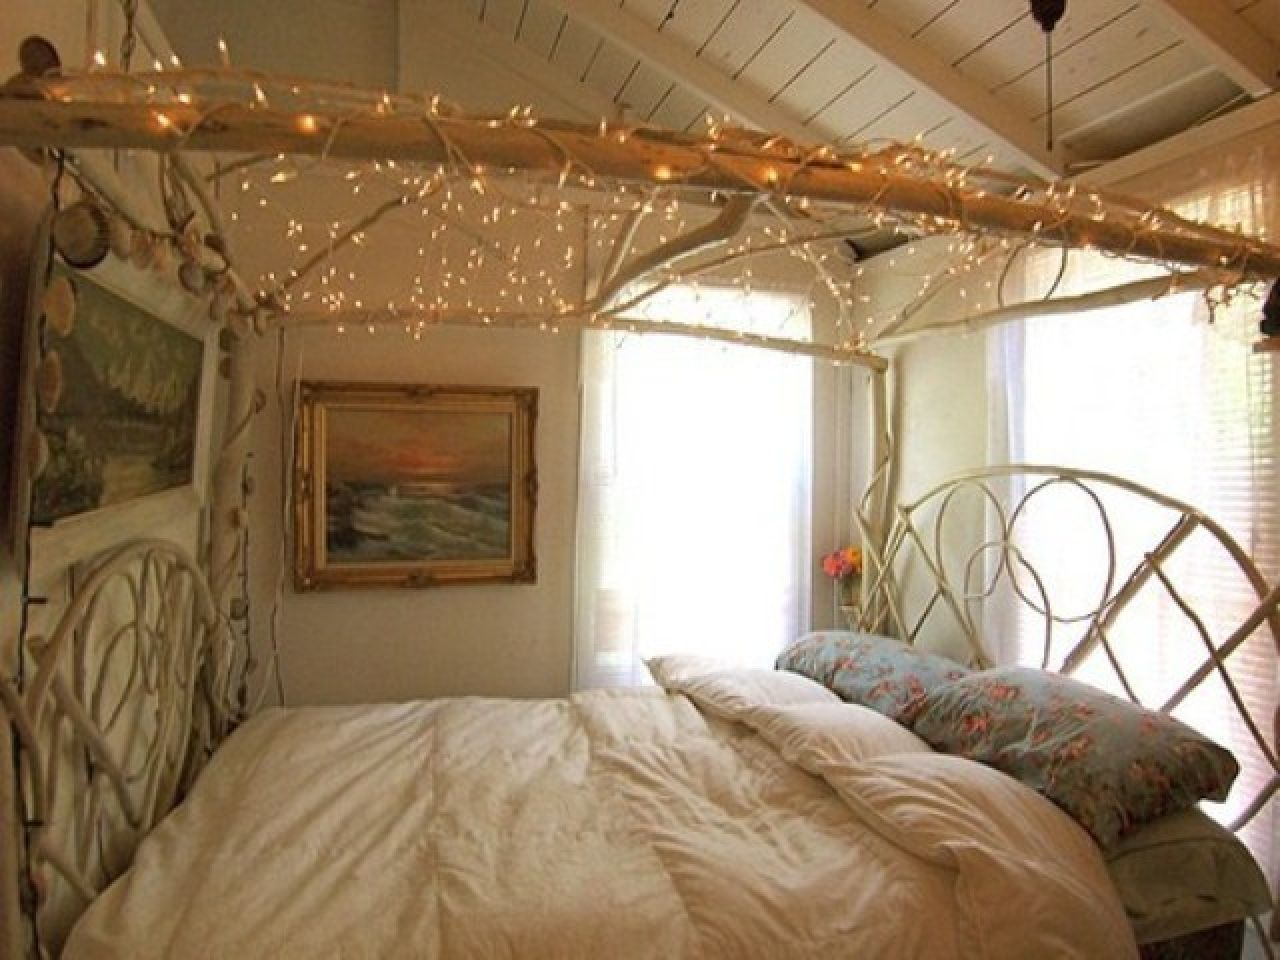 Bedroom fairy lights tumblr - Bedroom Fairy Lights Tumblr Fairy Lights Bedroom Piece Kitchen